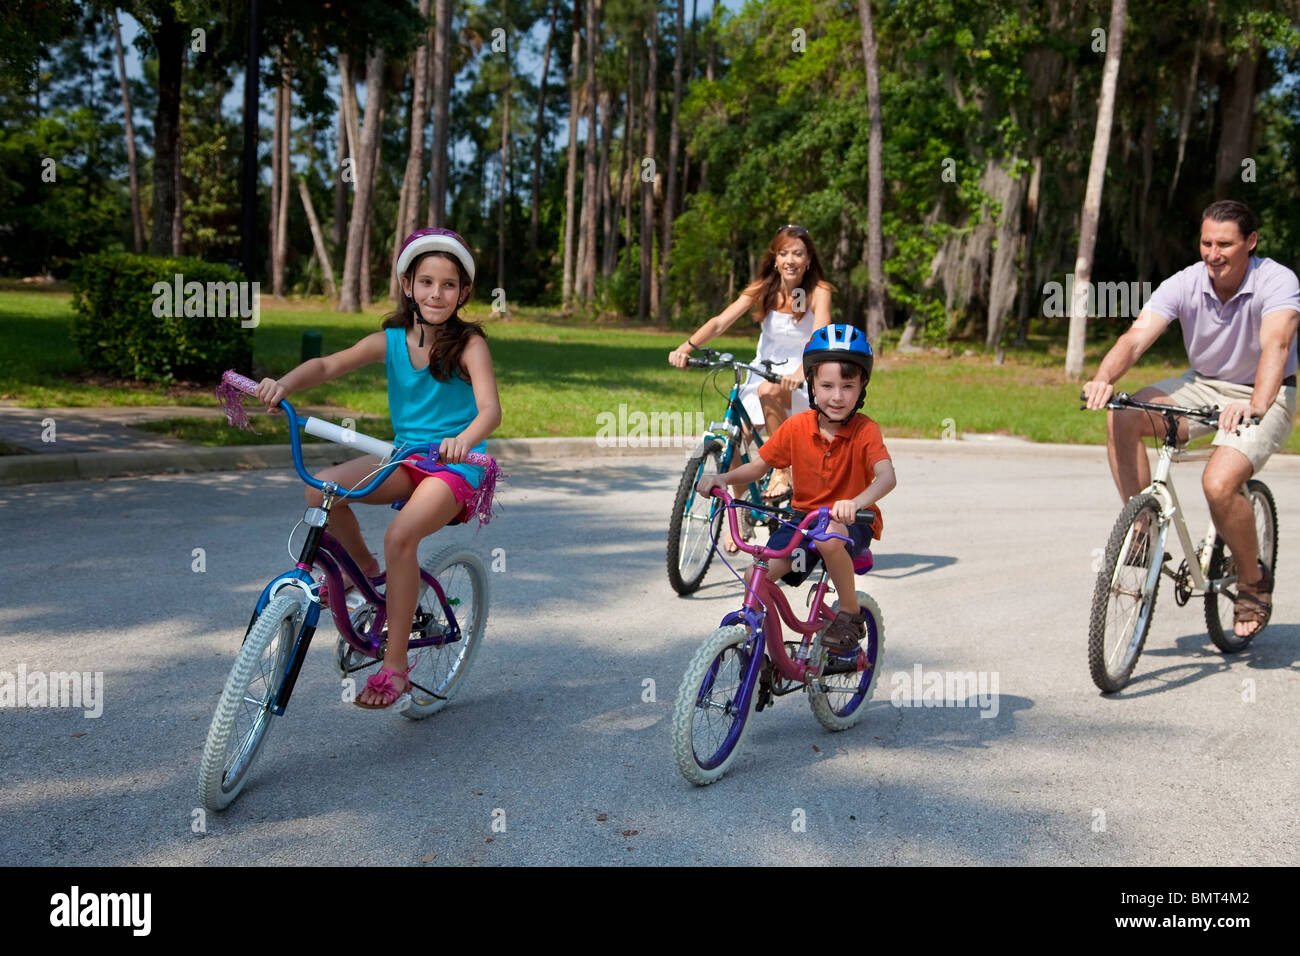 A modern family of two parents and two children, a boy and a girl, cycling together. - Stock Image